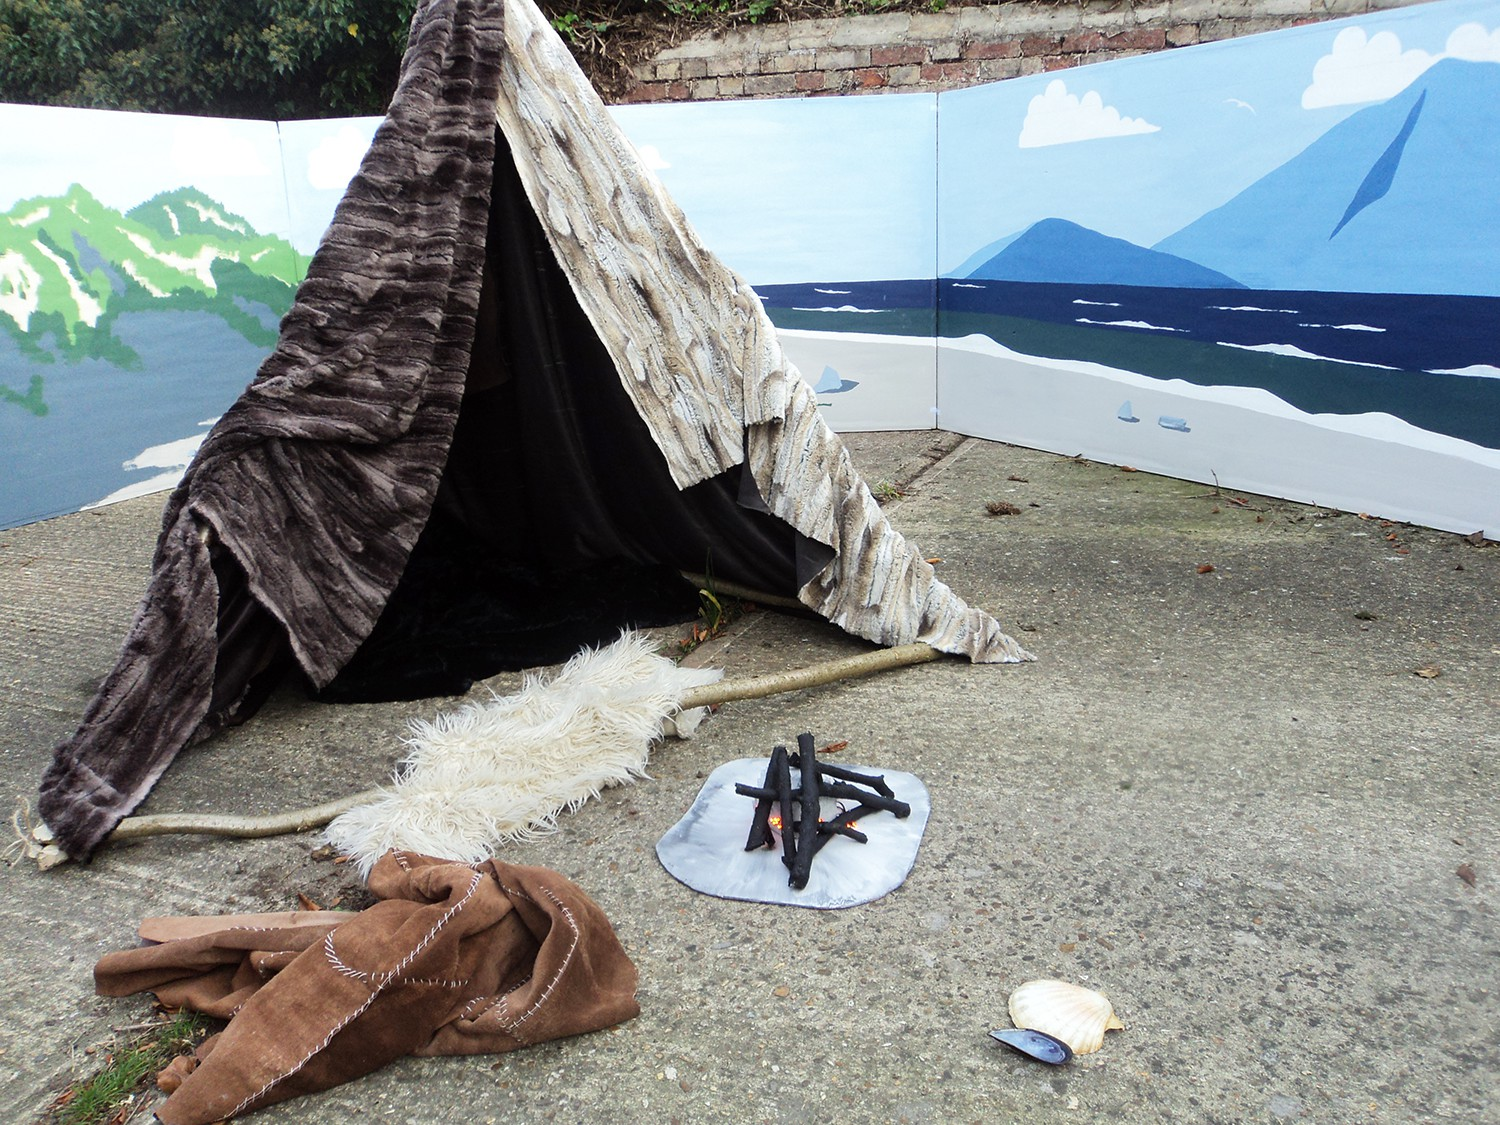 Mesolithic tent shelter replica